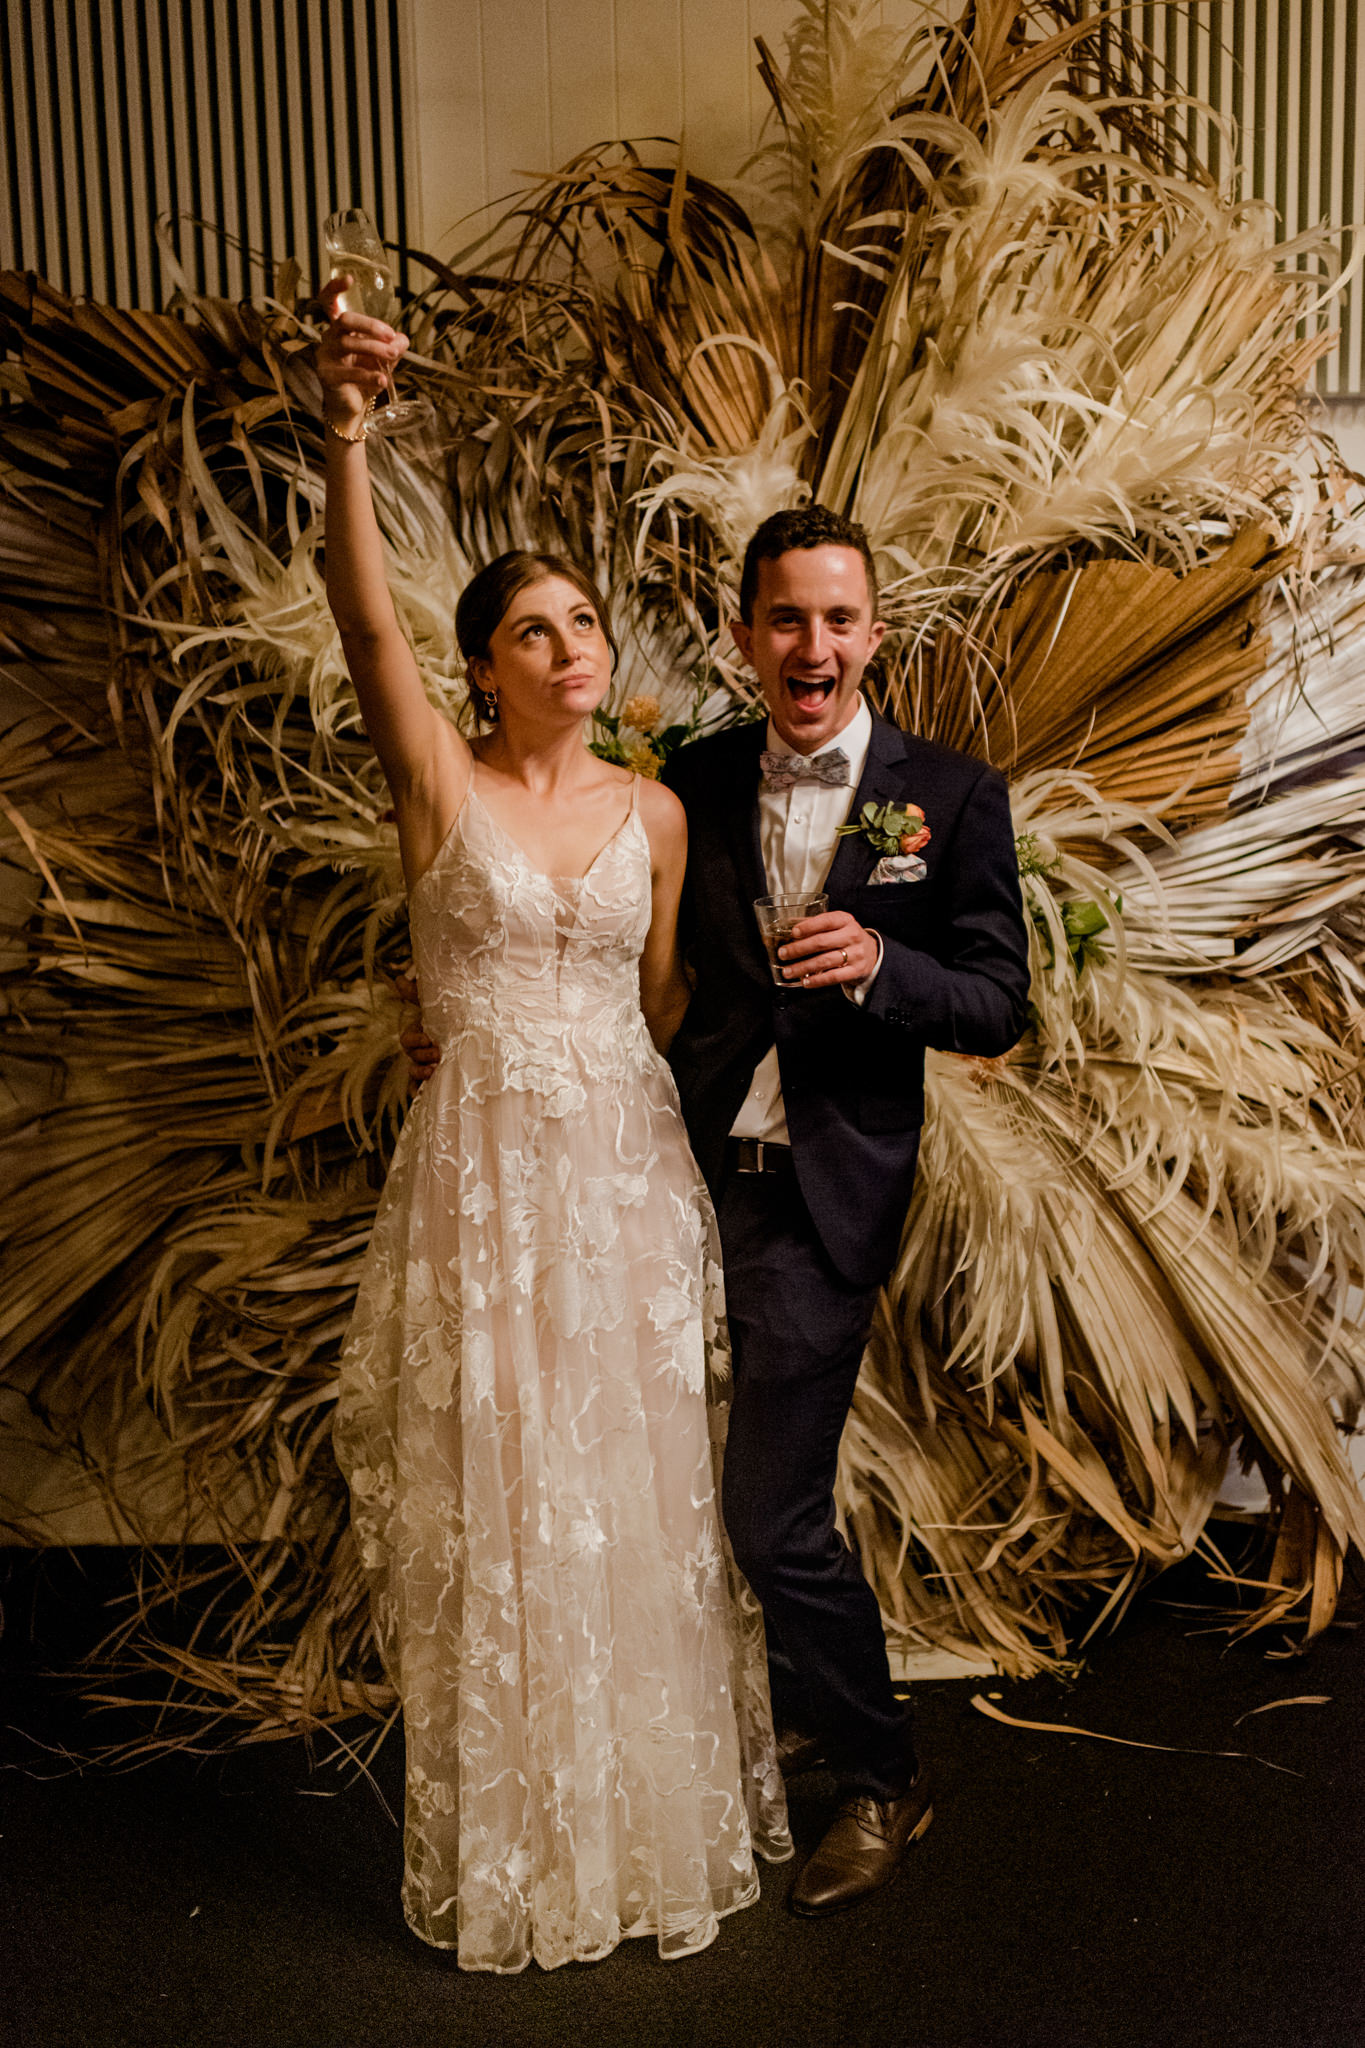 Bride and groom posing with drinks in front of a flower arbour